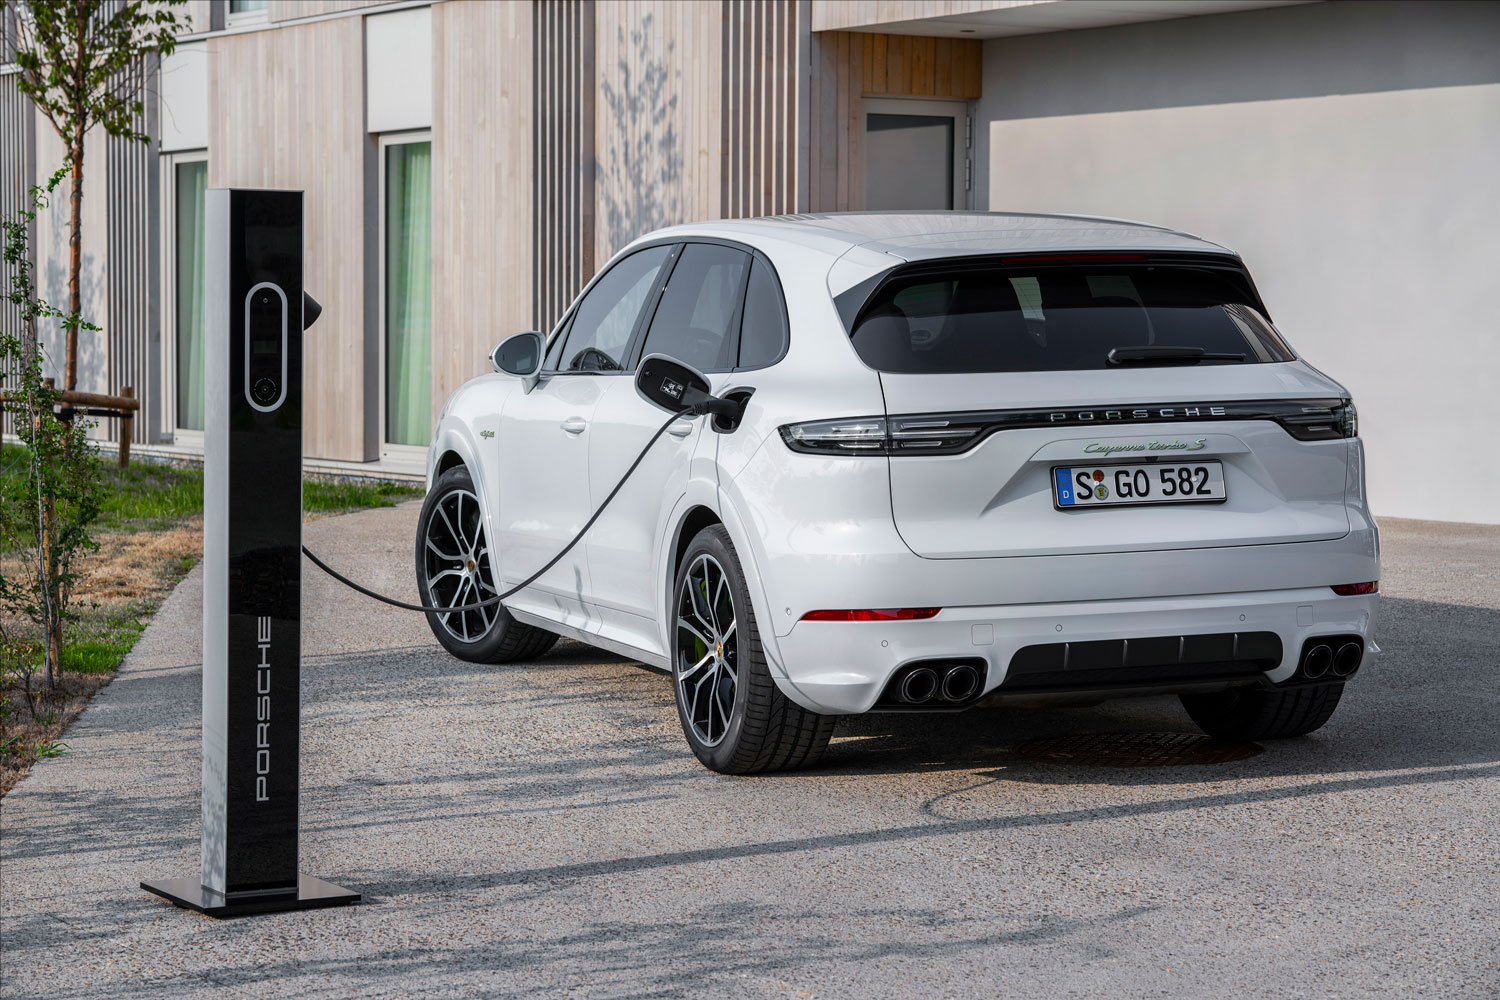 2020 Porsche Cayenne S E Hybrid Will Pack 670 Hp Hagerty Media